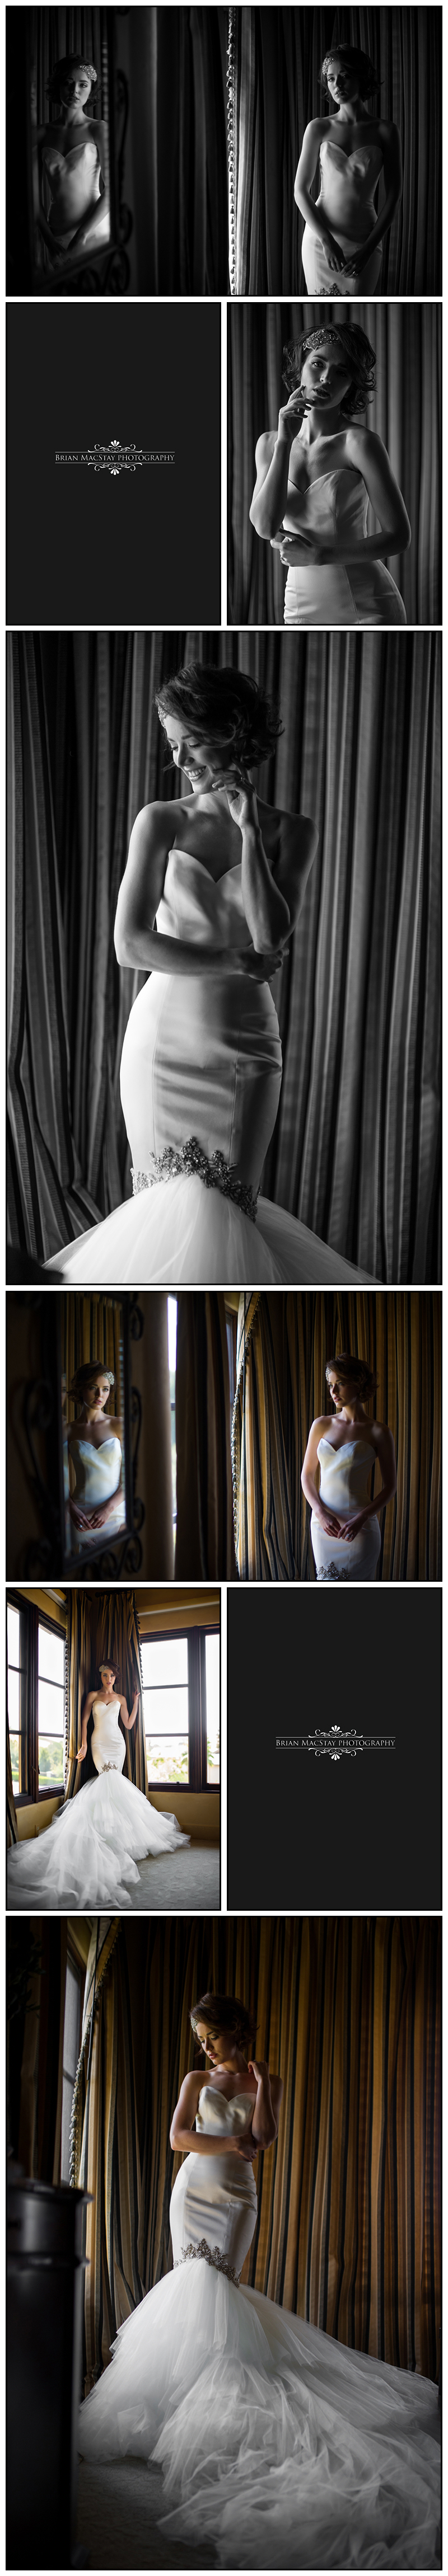 La Soie Bridal Walnut Creek Editoral Shoot